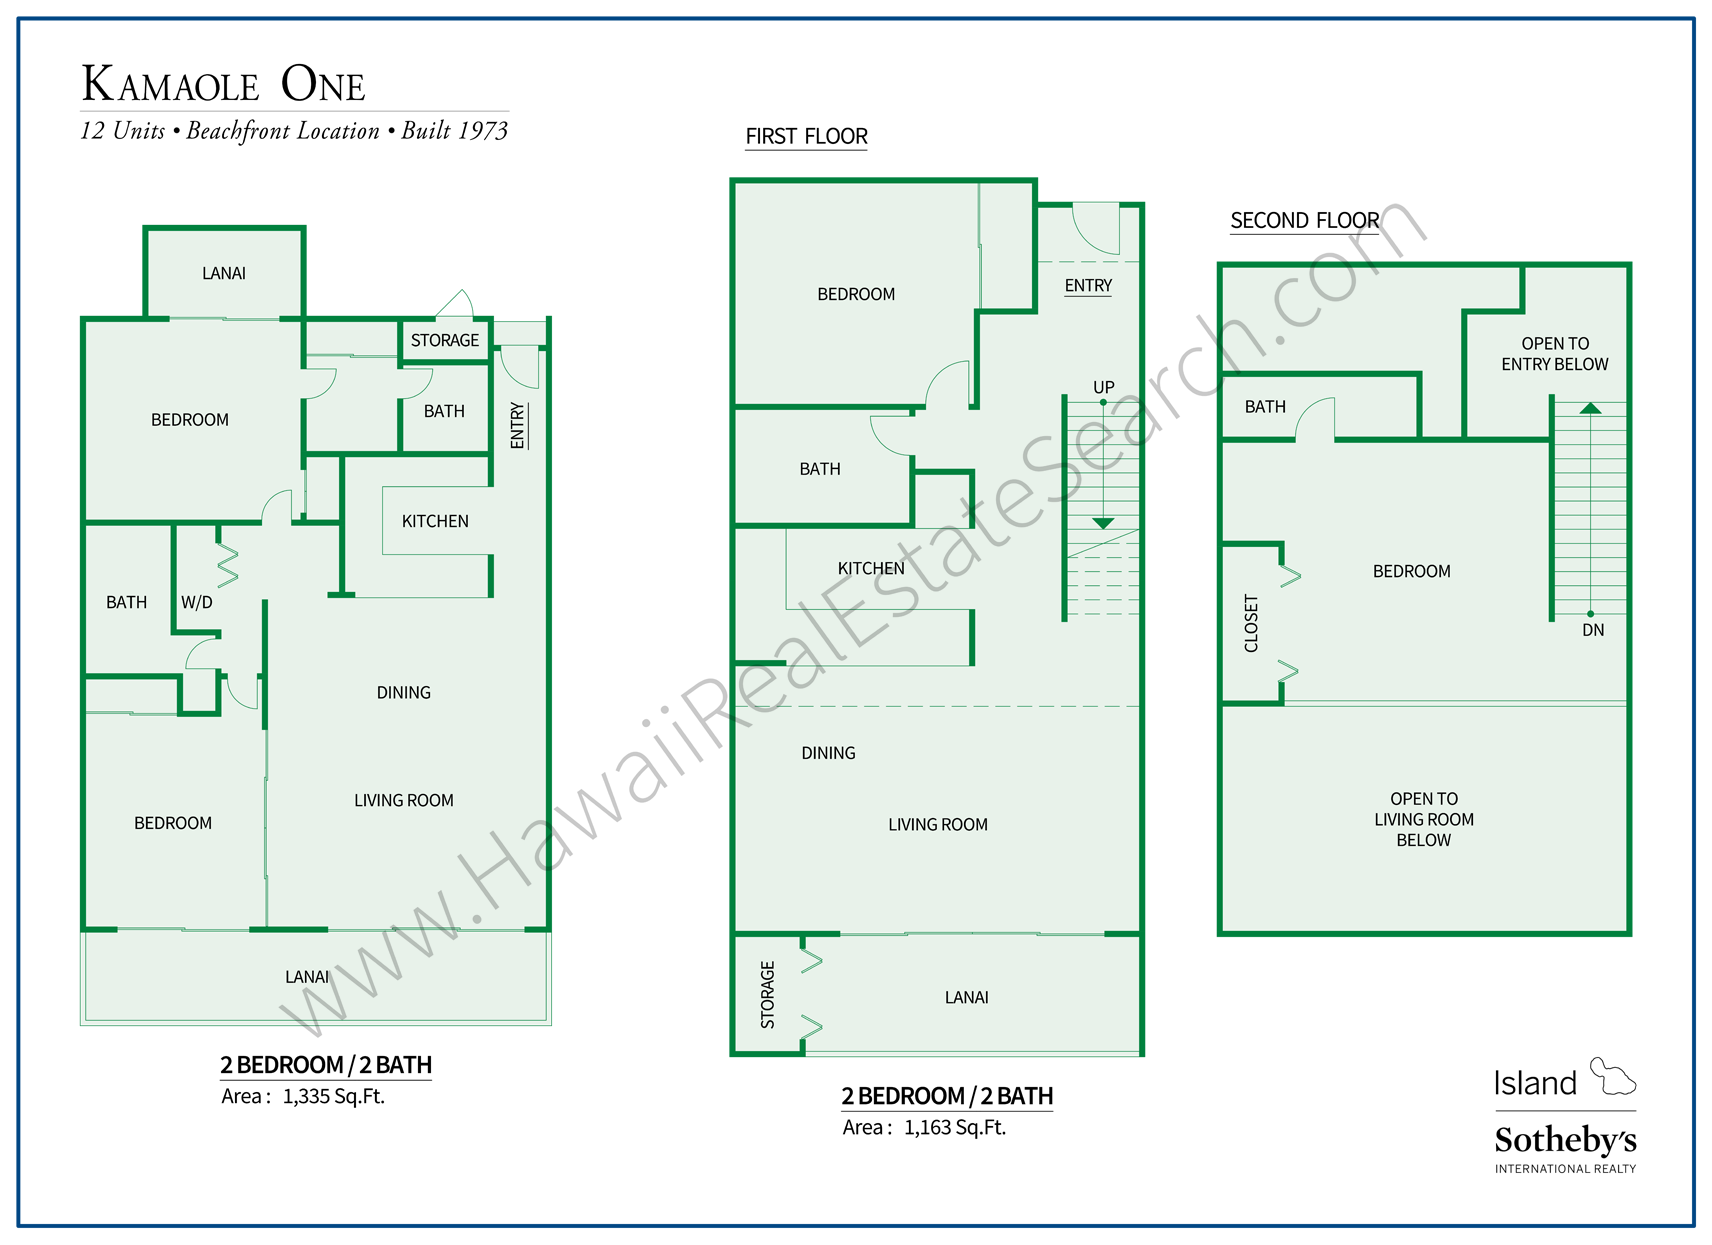 Kamaole One Floor Plans